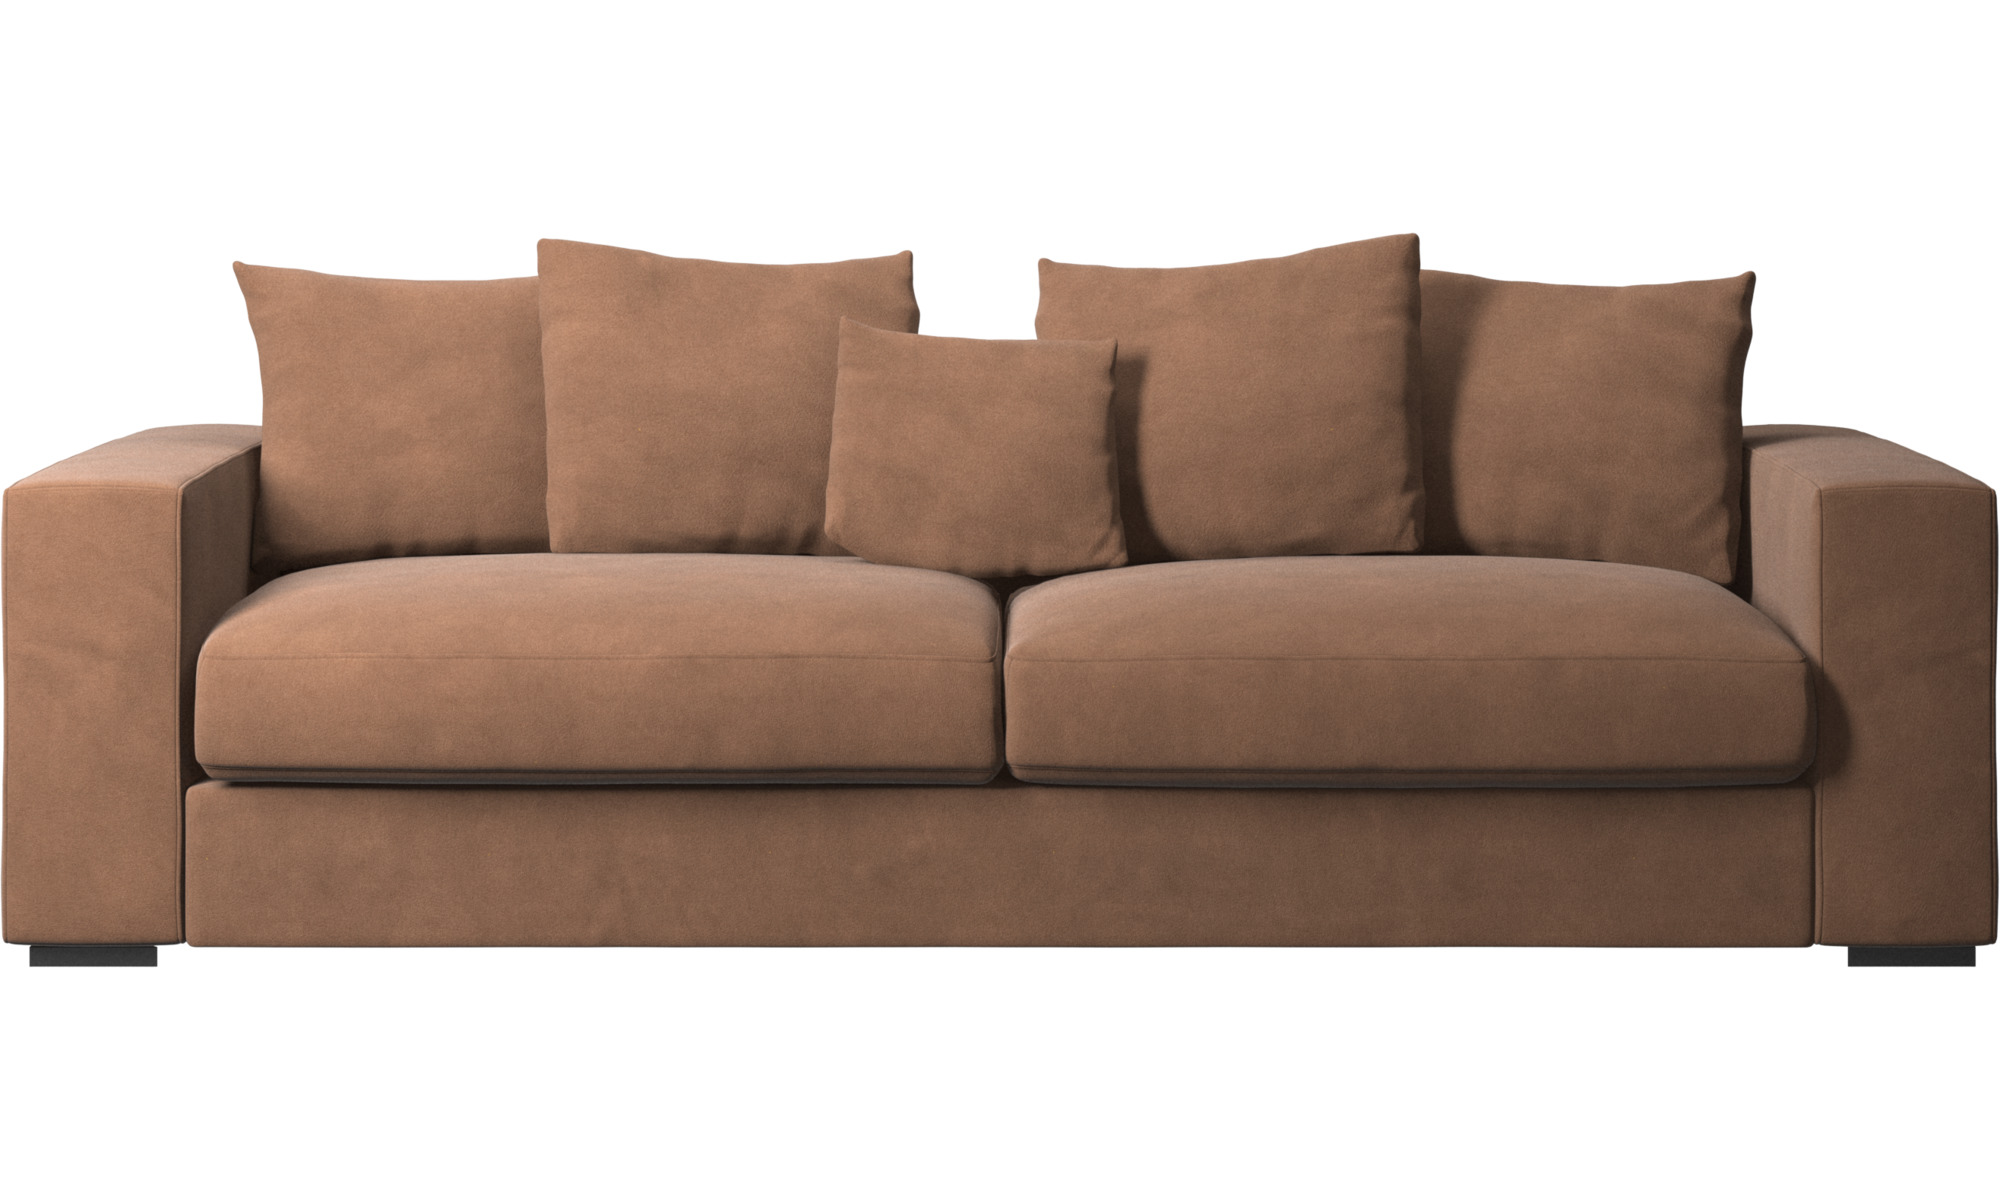 3 seater sofas cenova sofa boconcept for Couch und sofa fürth